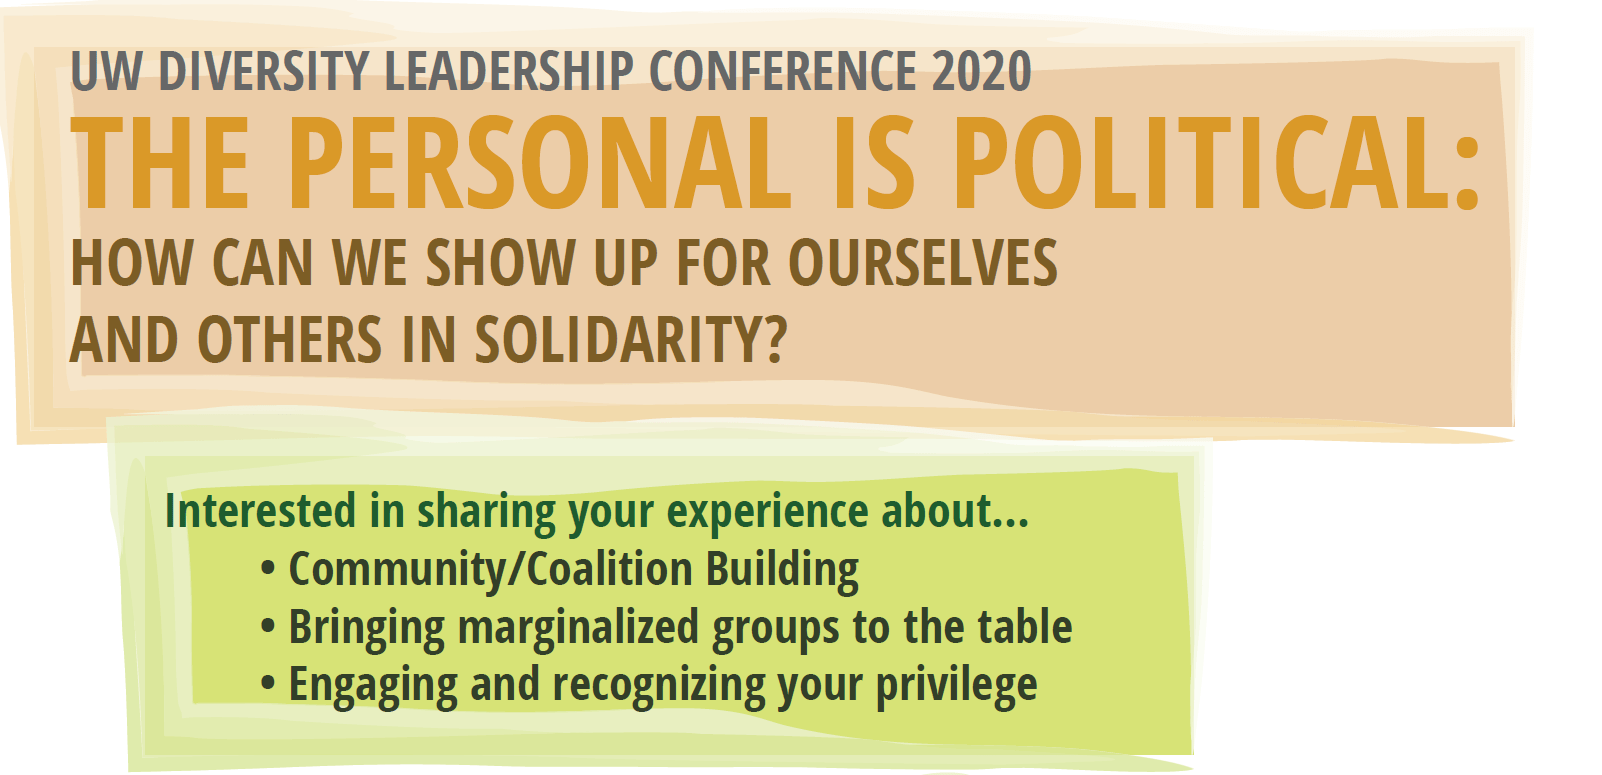 Diversity Leadership Conference Call For Workshop Ideas